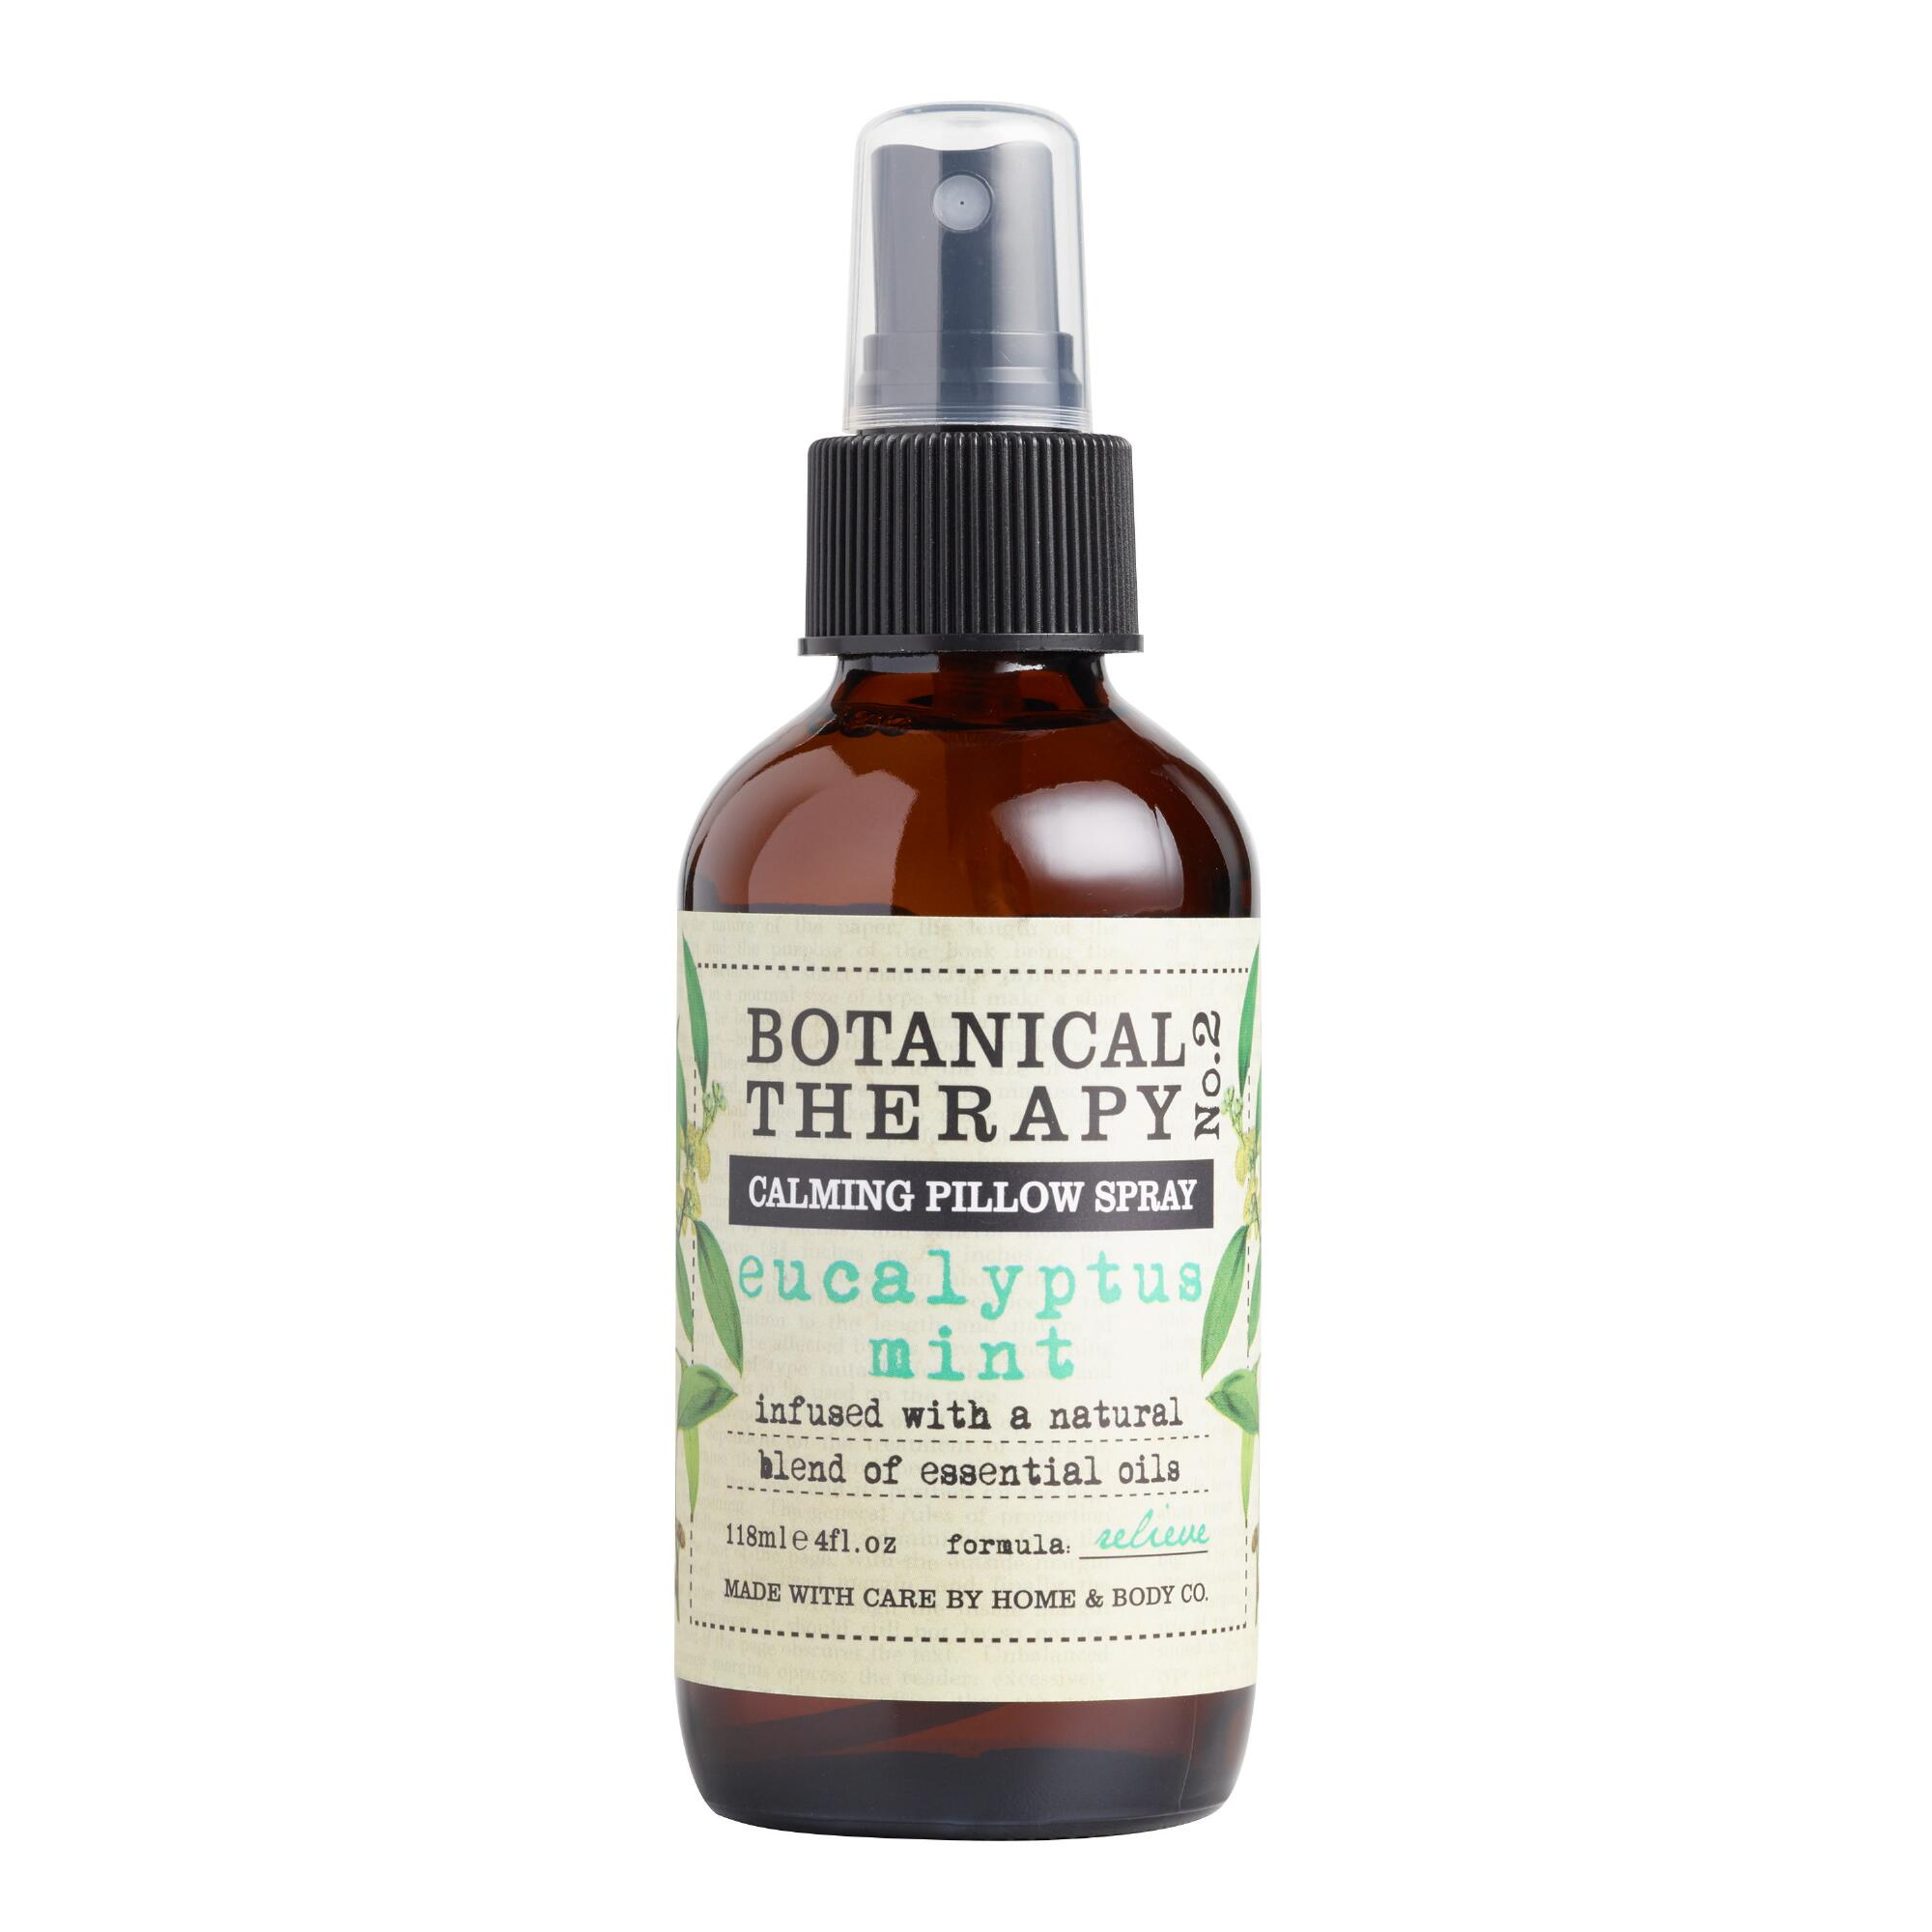 Botanical Therapy Eucalyptus Mint Pillow Spray by World Market